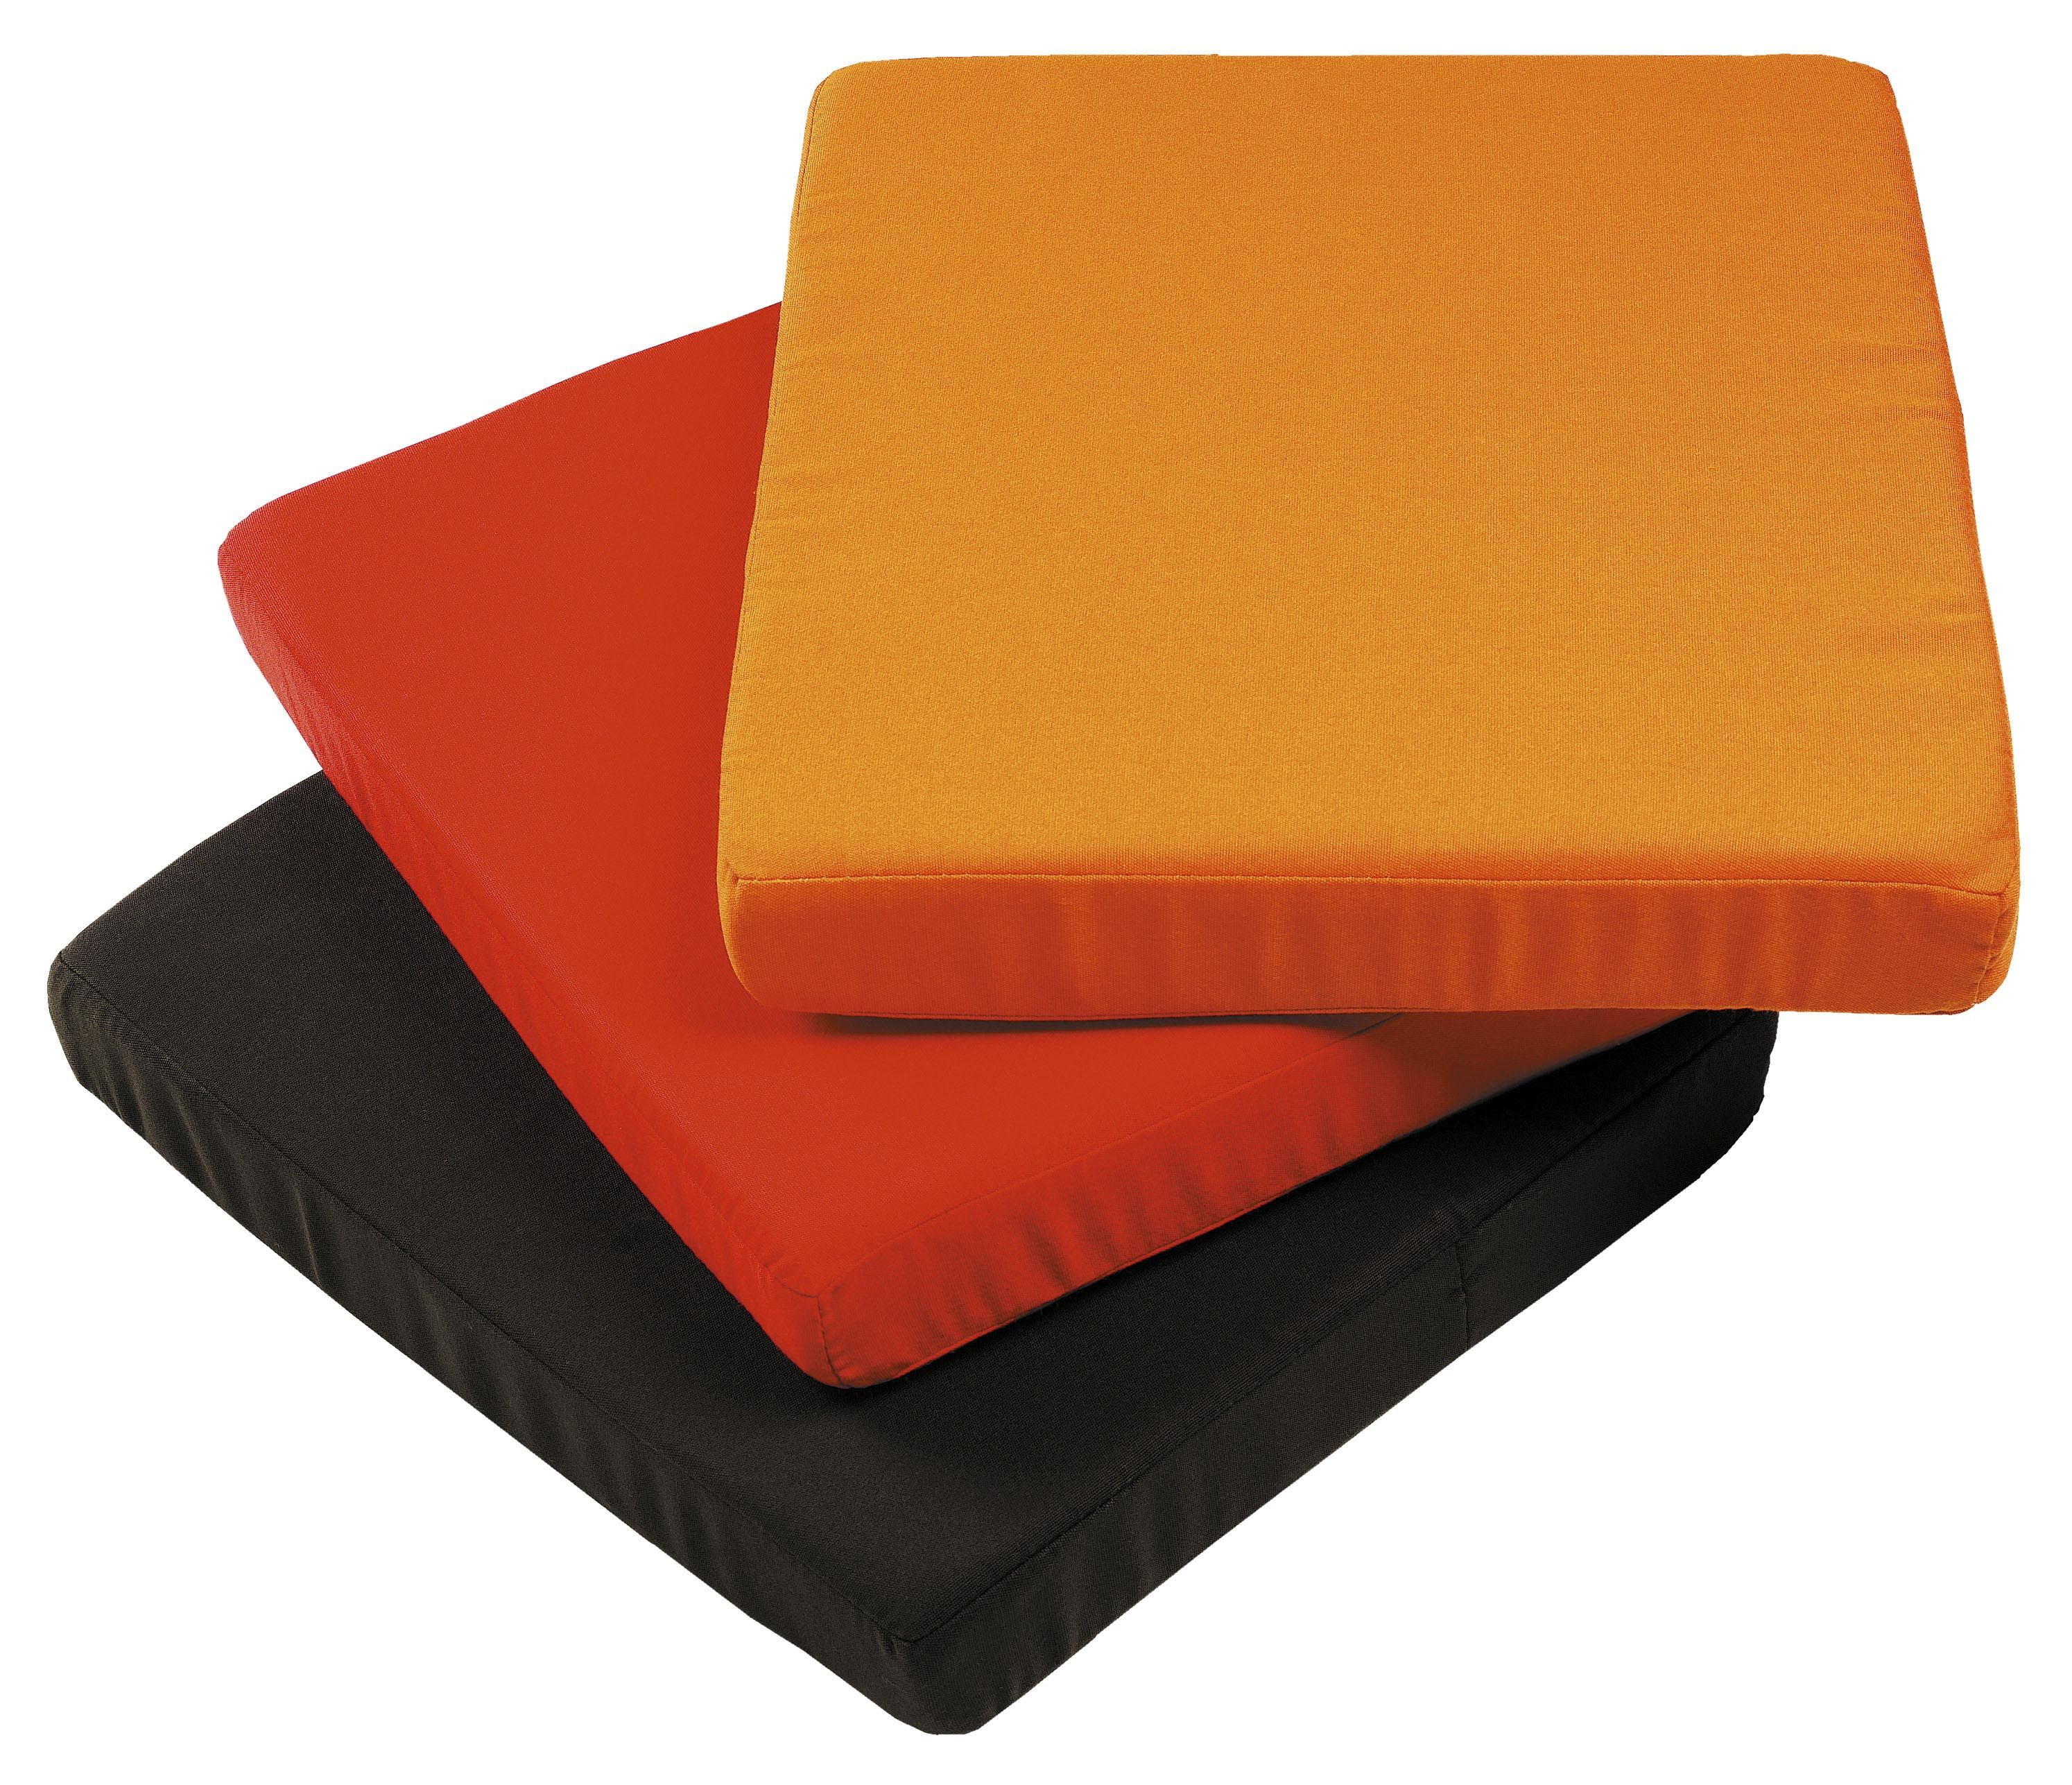 coussin d 39 assise pour pied de parasol cube coussin orange sywawa. Black Bedroom Furniture Sets. Home Design Ideas